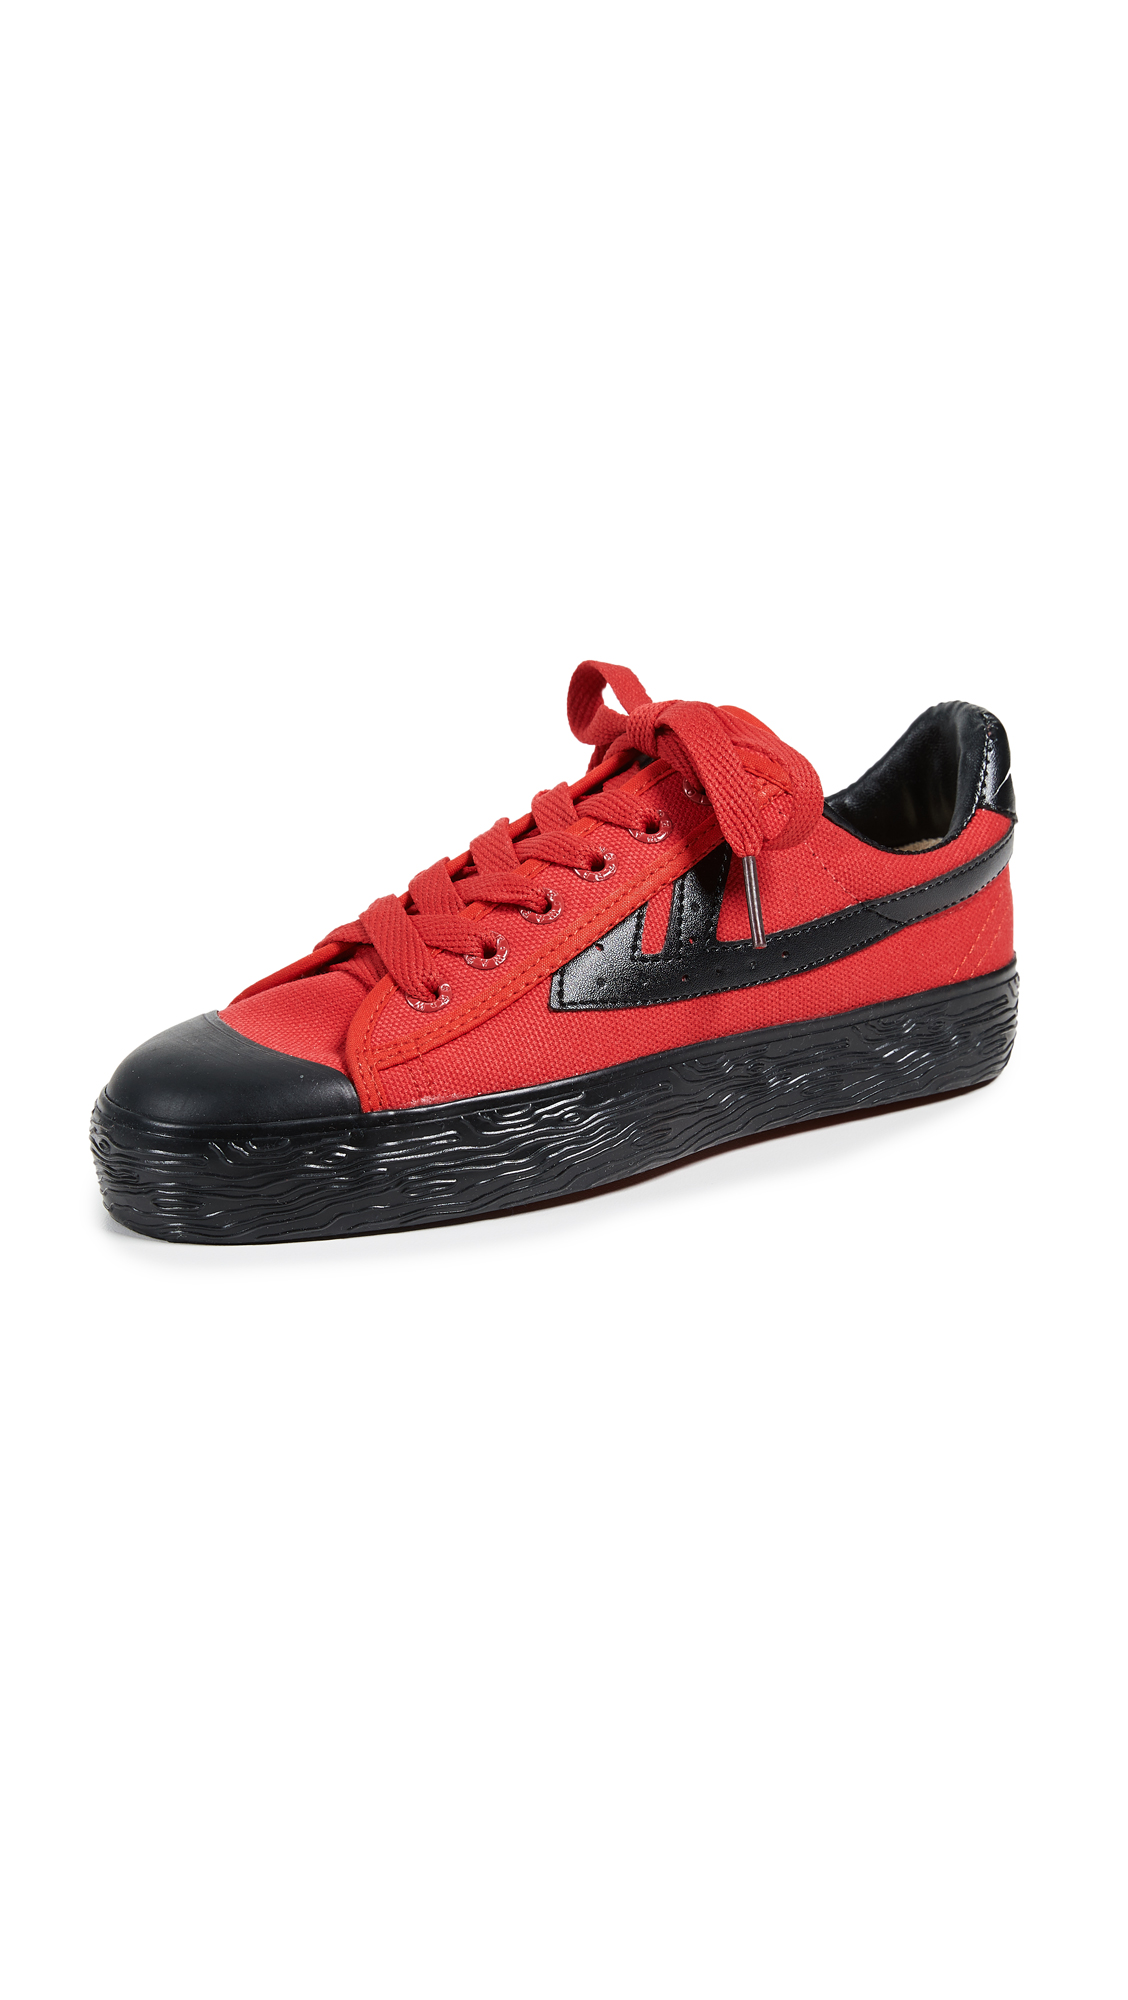 WOS33 Classic Sneakers - Red/Black